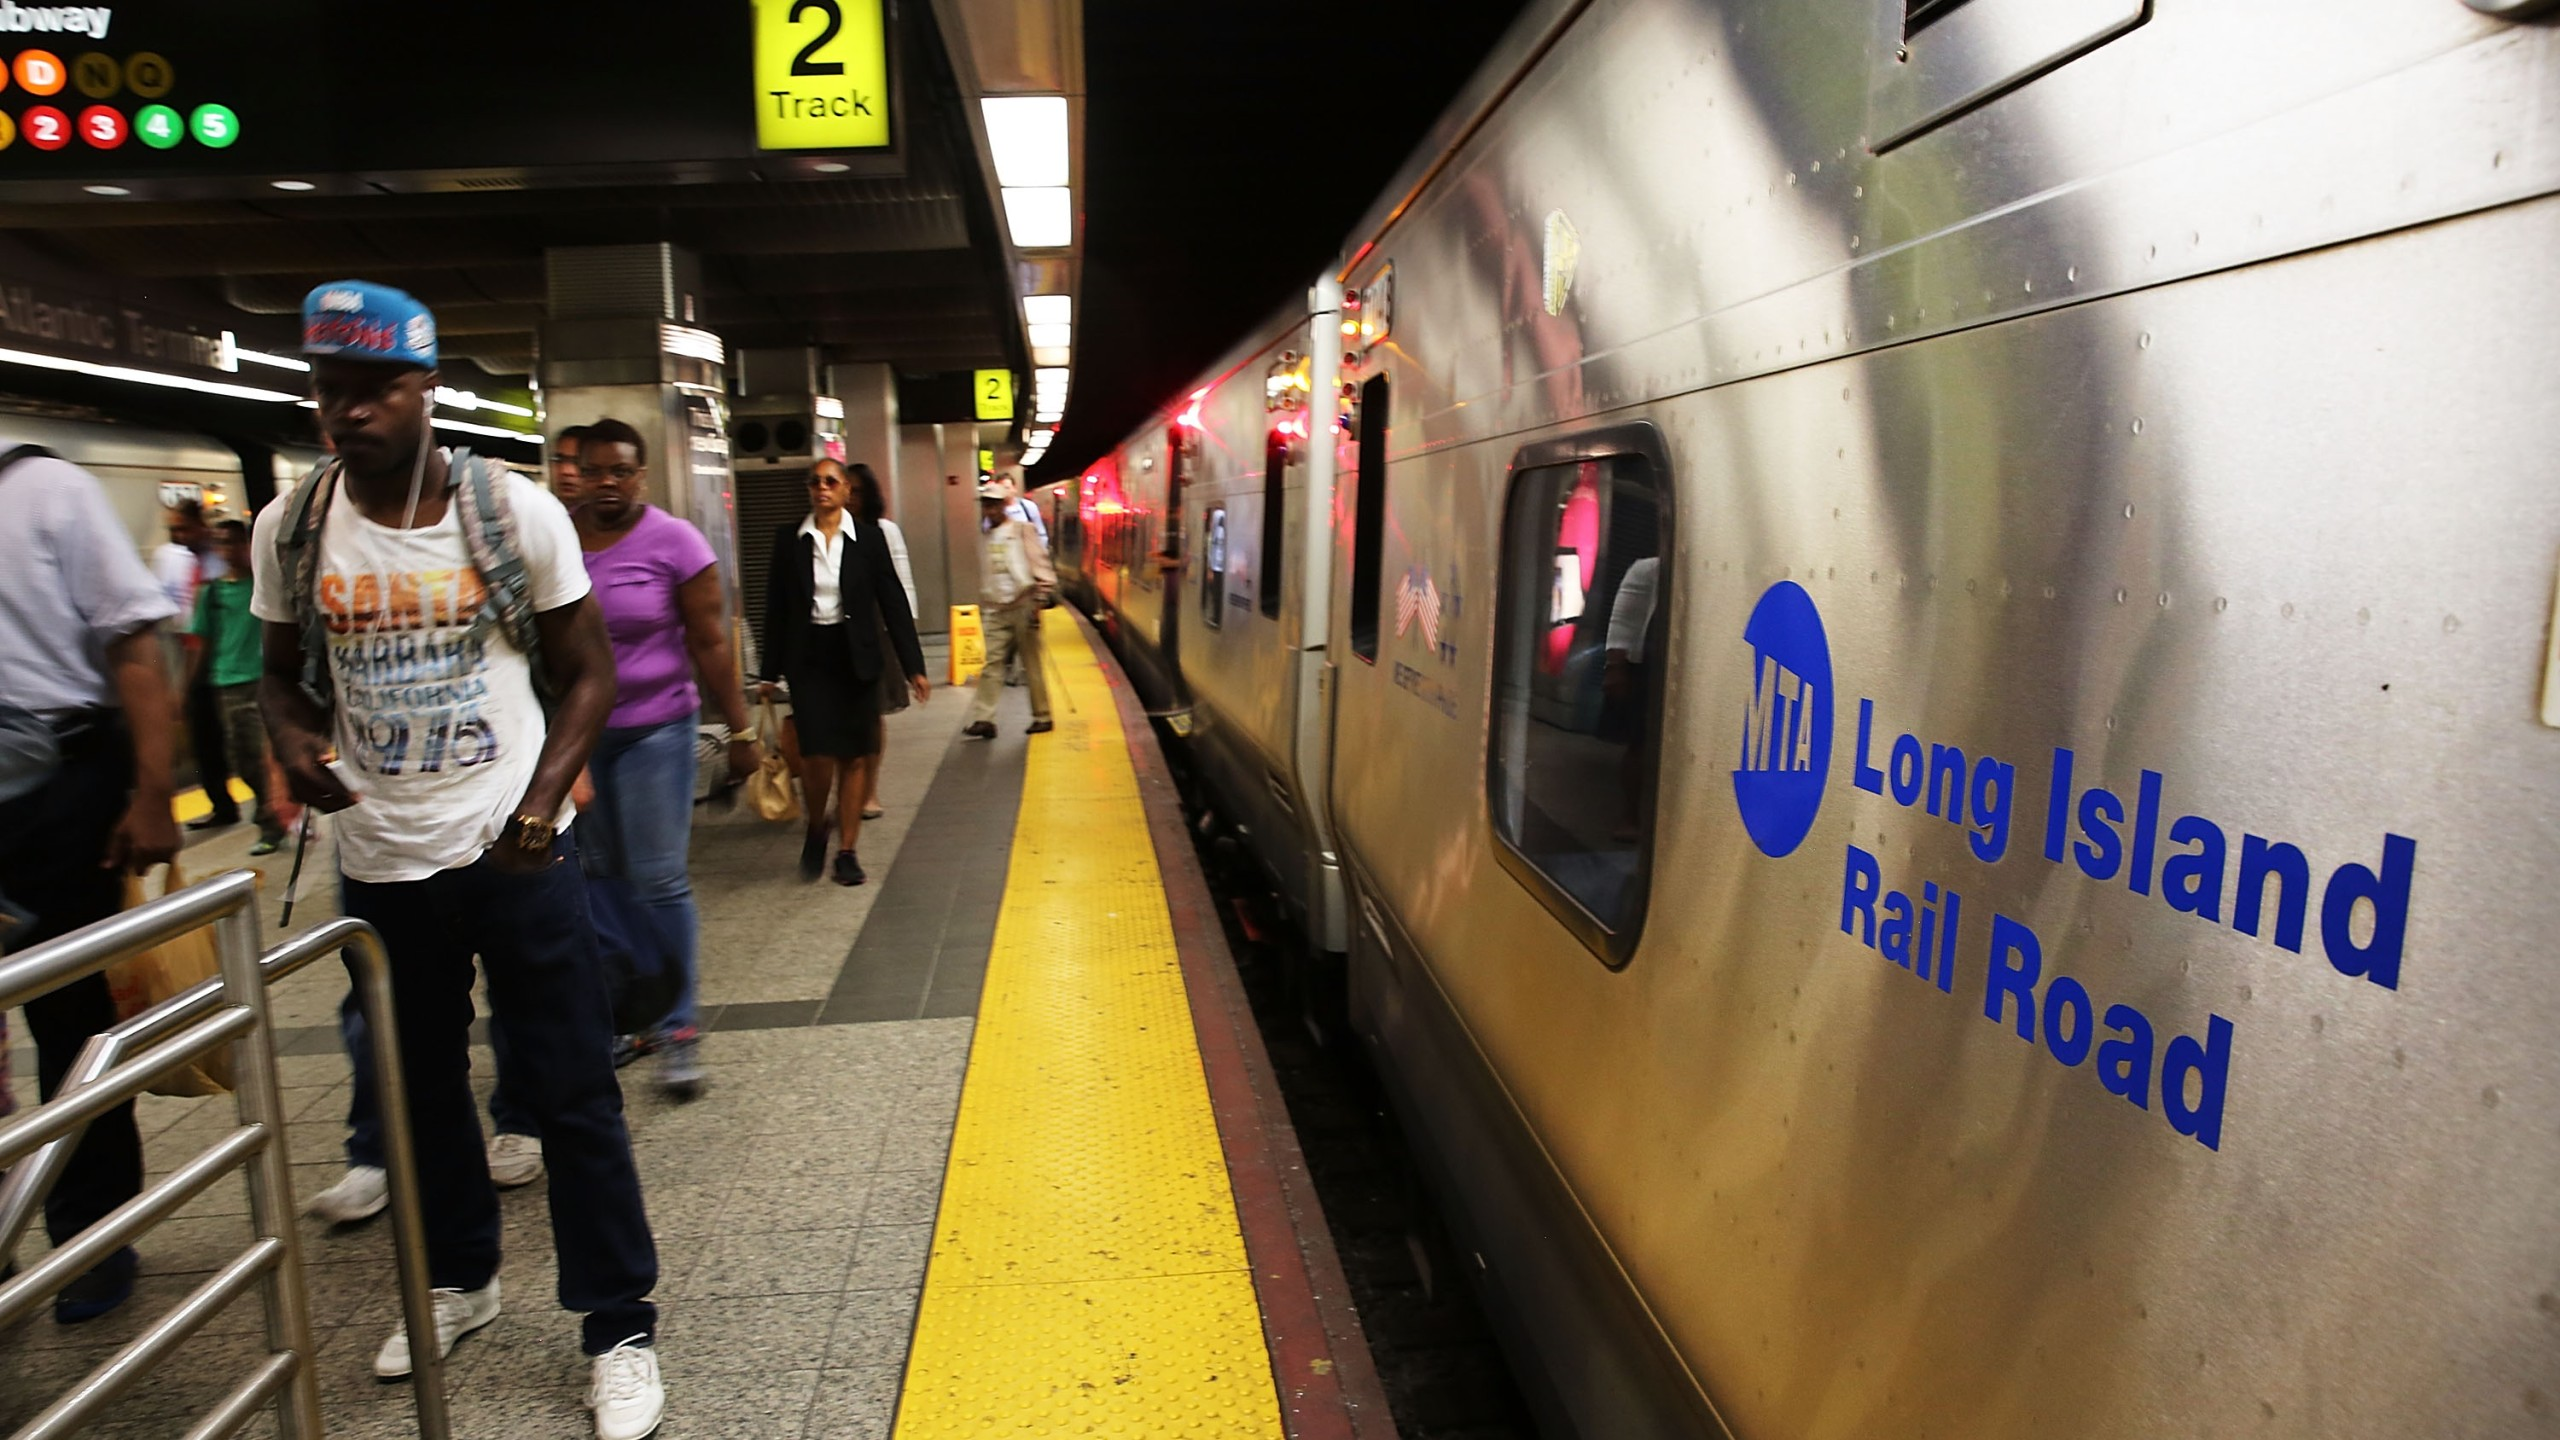 NEW YORK, NY - JULY 15:  A Long Island Rail Road (LIRR) train sits at the platform on July 15, 2014 in the Brooklyn borough of New York City. Currently there are no new negotiations scheduled between the Metropolitan Transportation Authority (MTA) and unions representing Long Island Rail Road workers after talks broke off abruptly on July 14. Around 300,000 riders, commuters and tourists, rely on the railroad every day which travels between Long Island and New York City. With Long Island Rail Road union leaders threatening to strike as early as Sunday, July 20, with pay increases and health care contributions are some of the issues being debated.  (Photo by Spencer Platt/Getty Images)